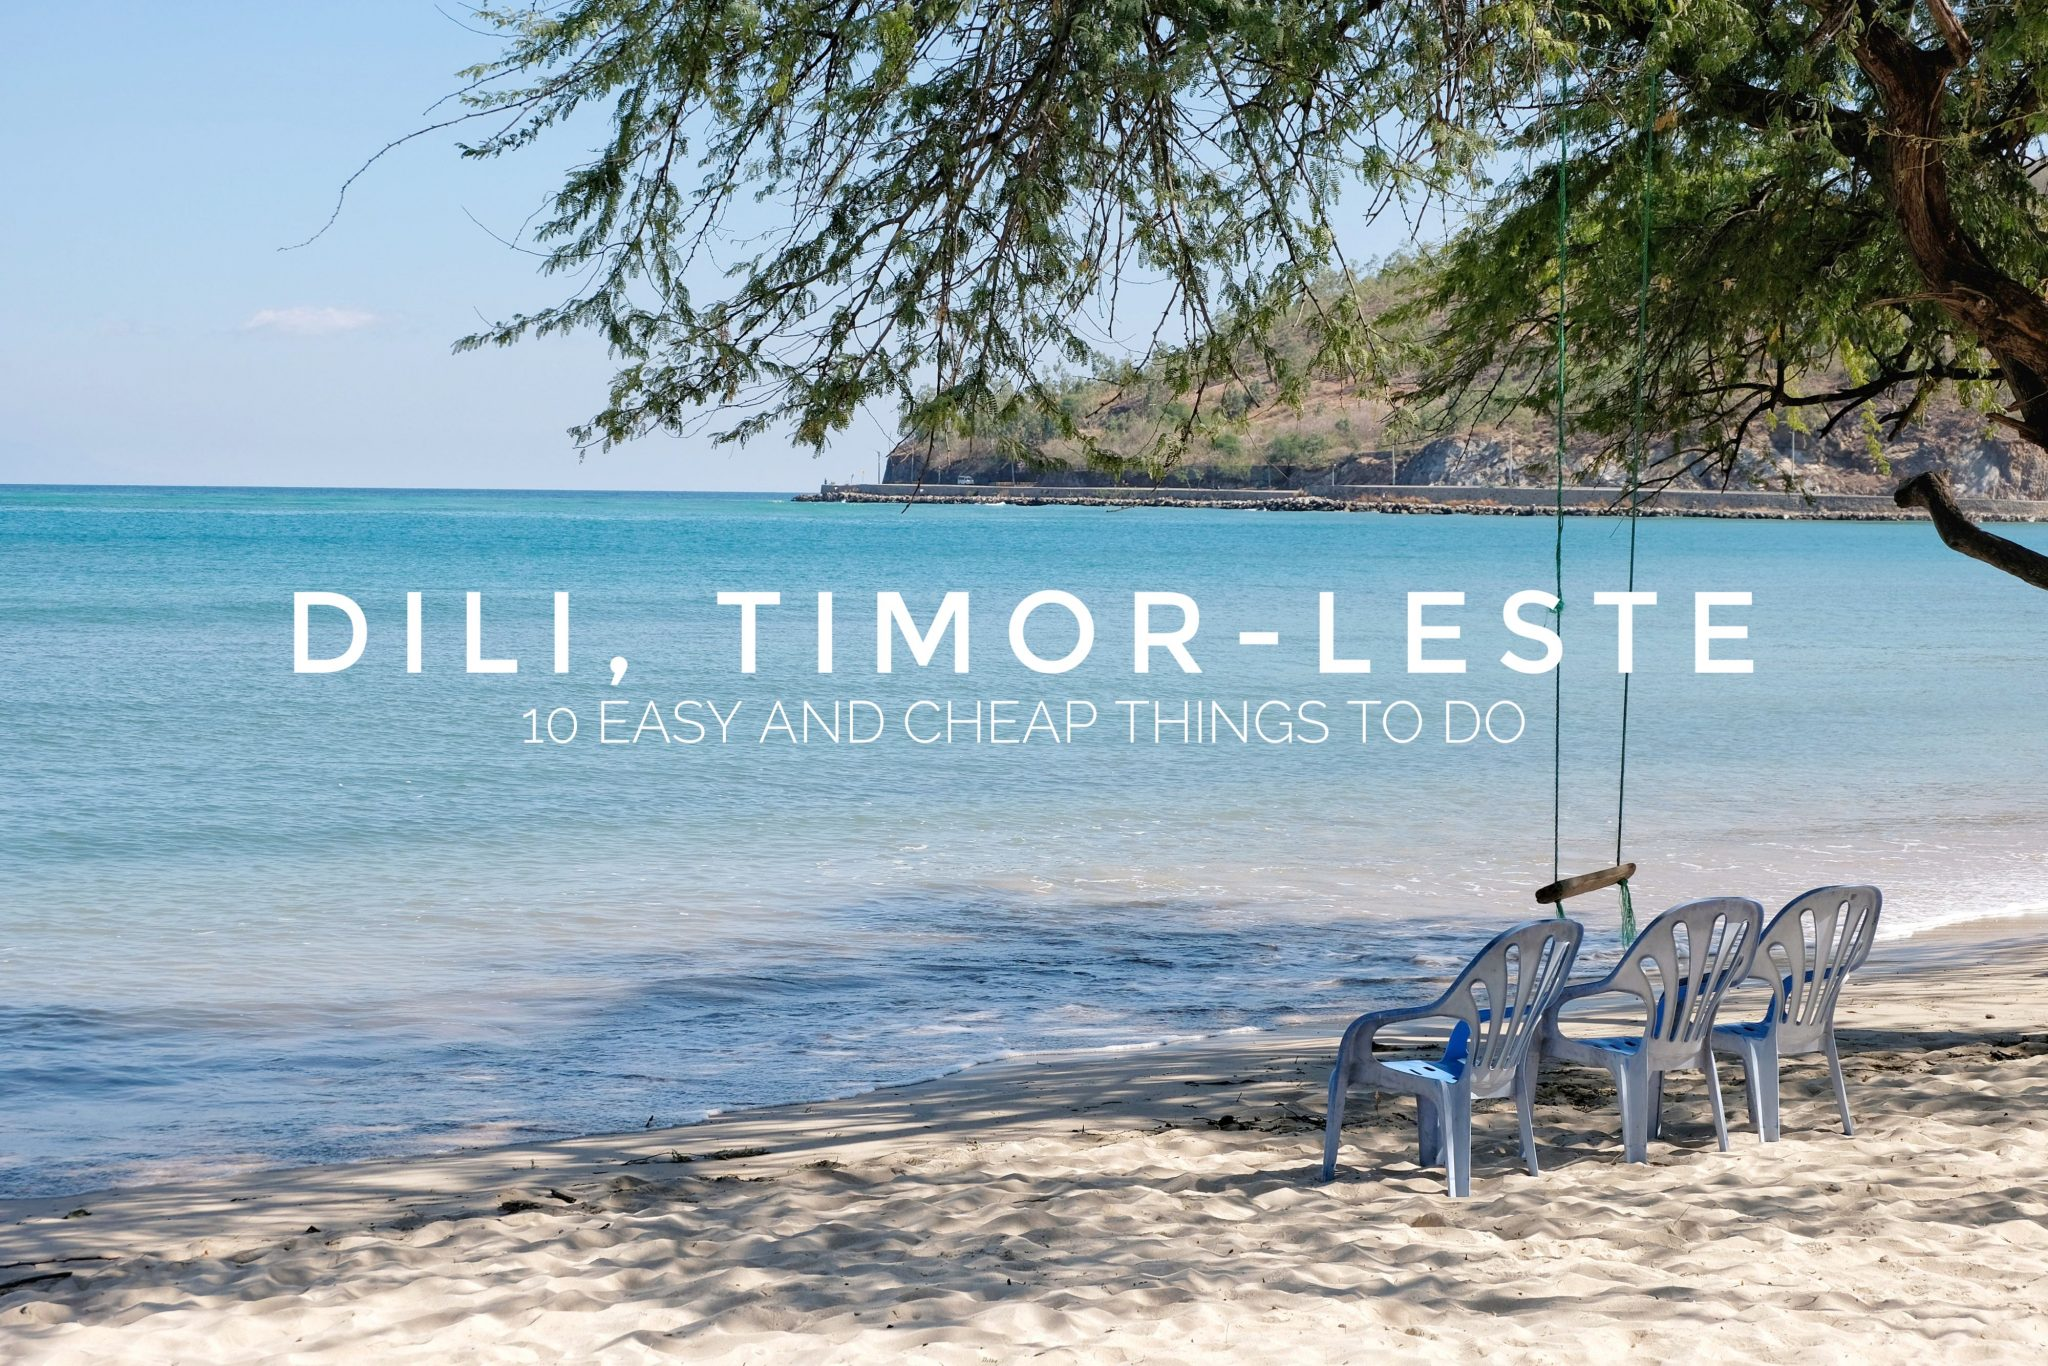 10 Cheap and Easy Things to do in Dili, Timor-Leste